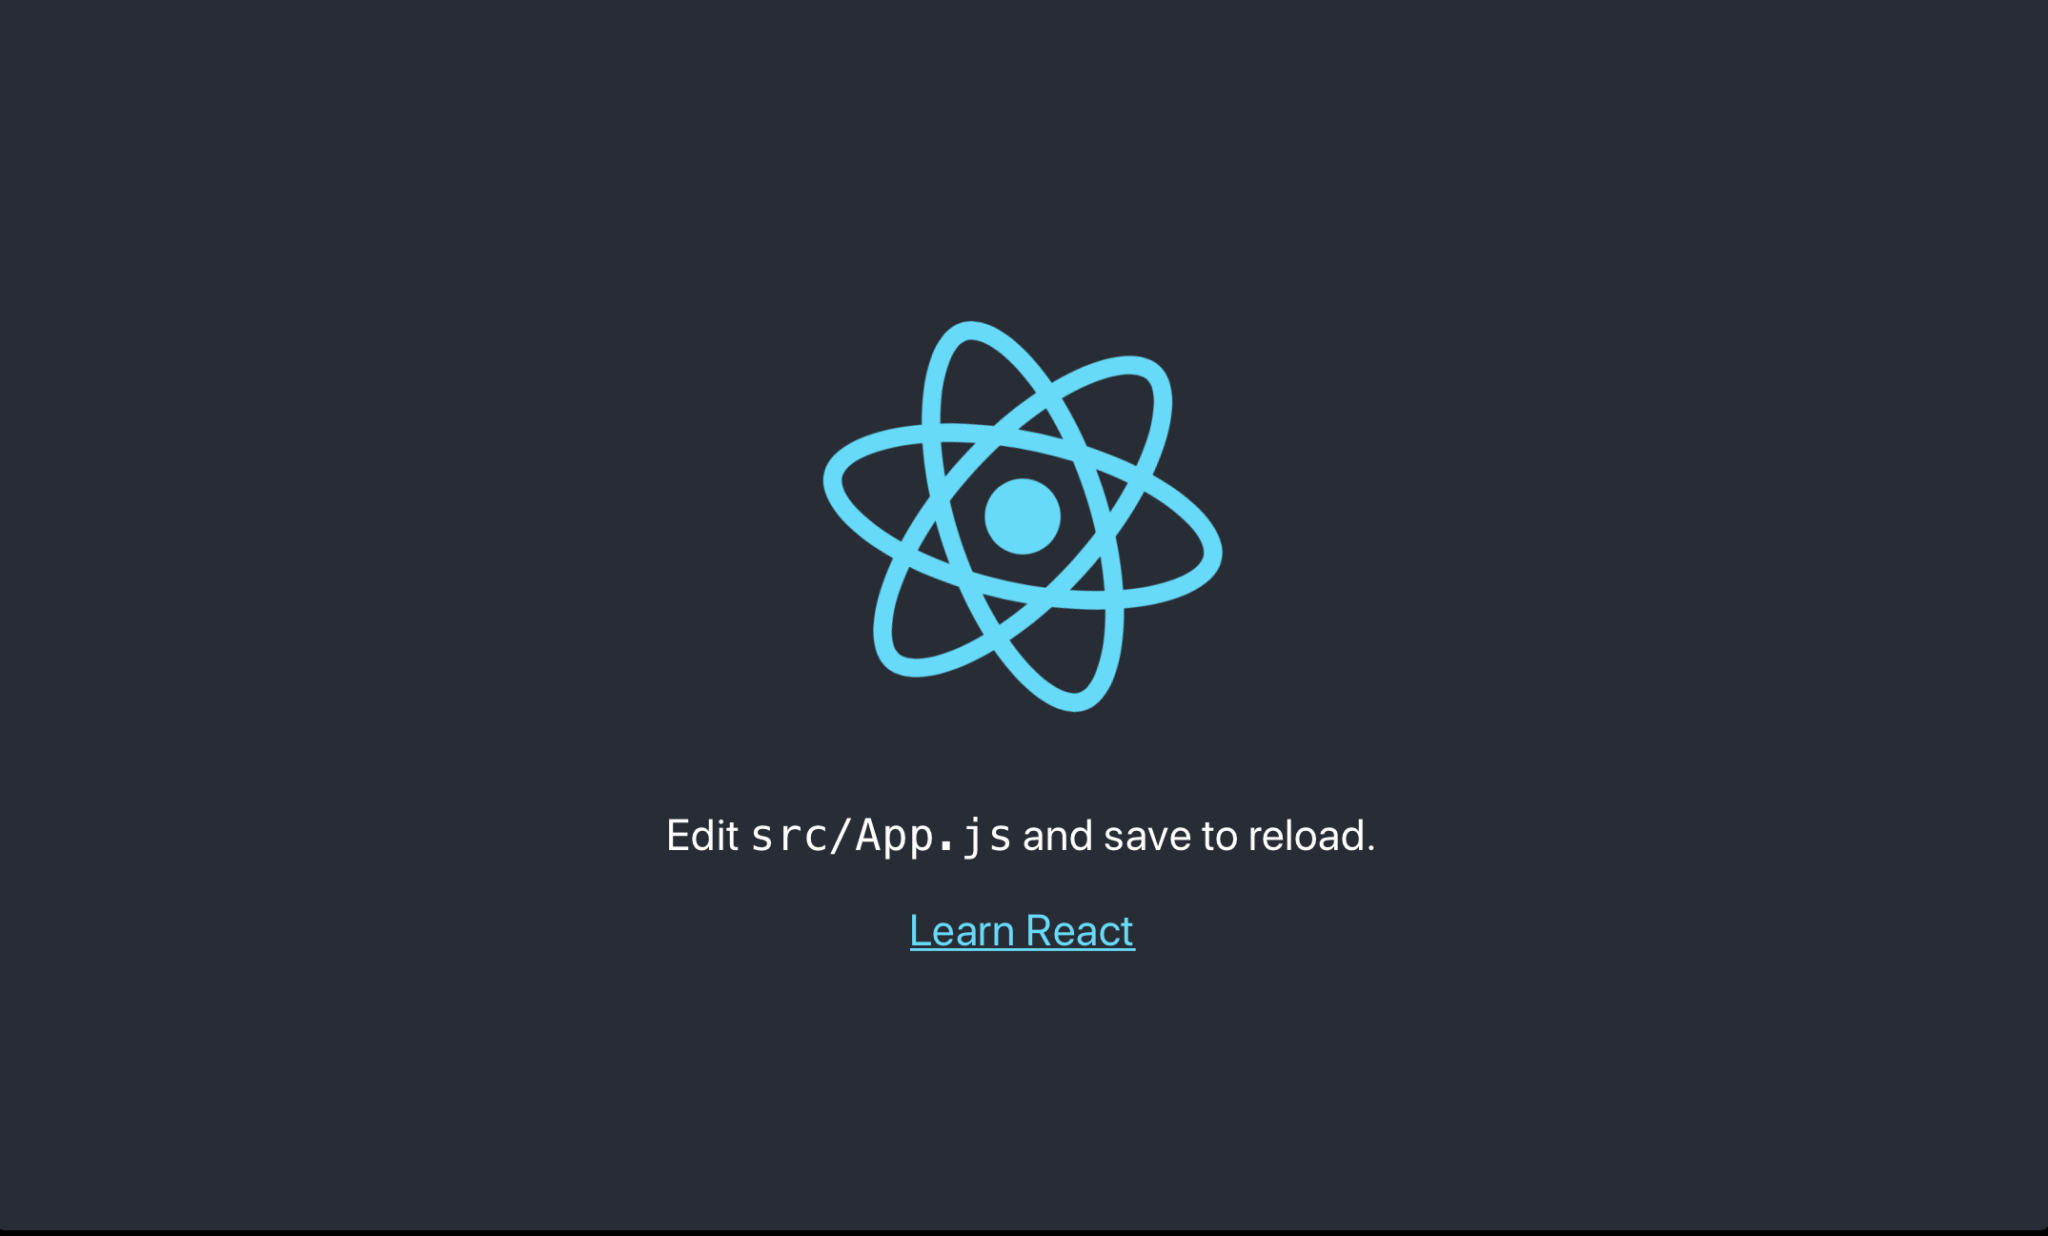 edit src/App.js and save to reload React app